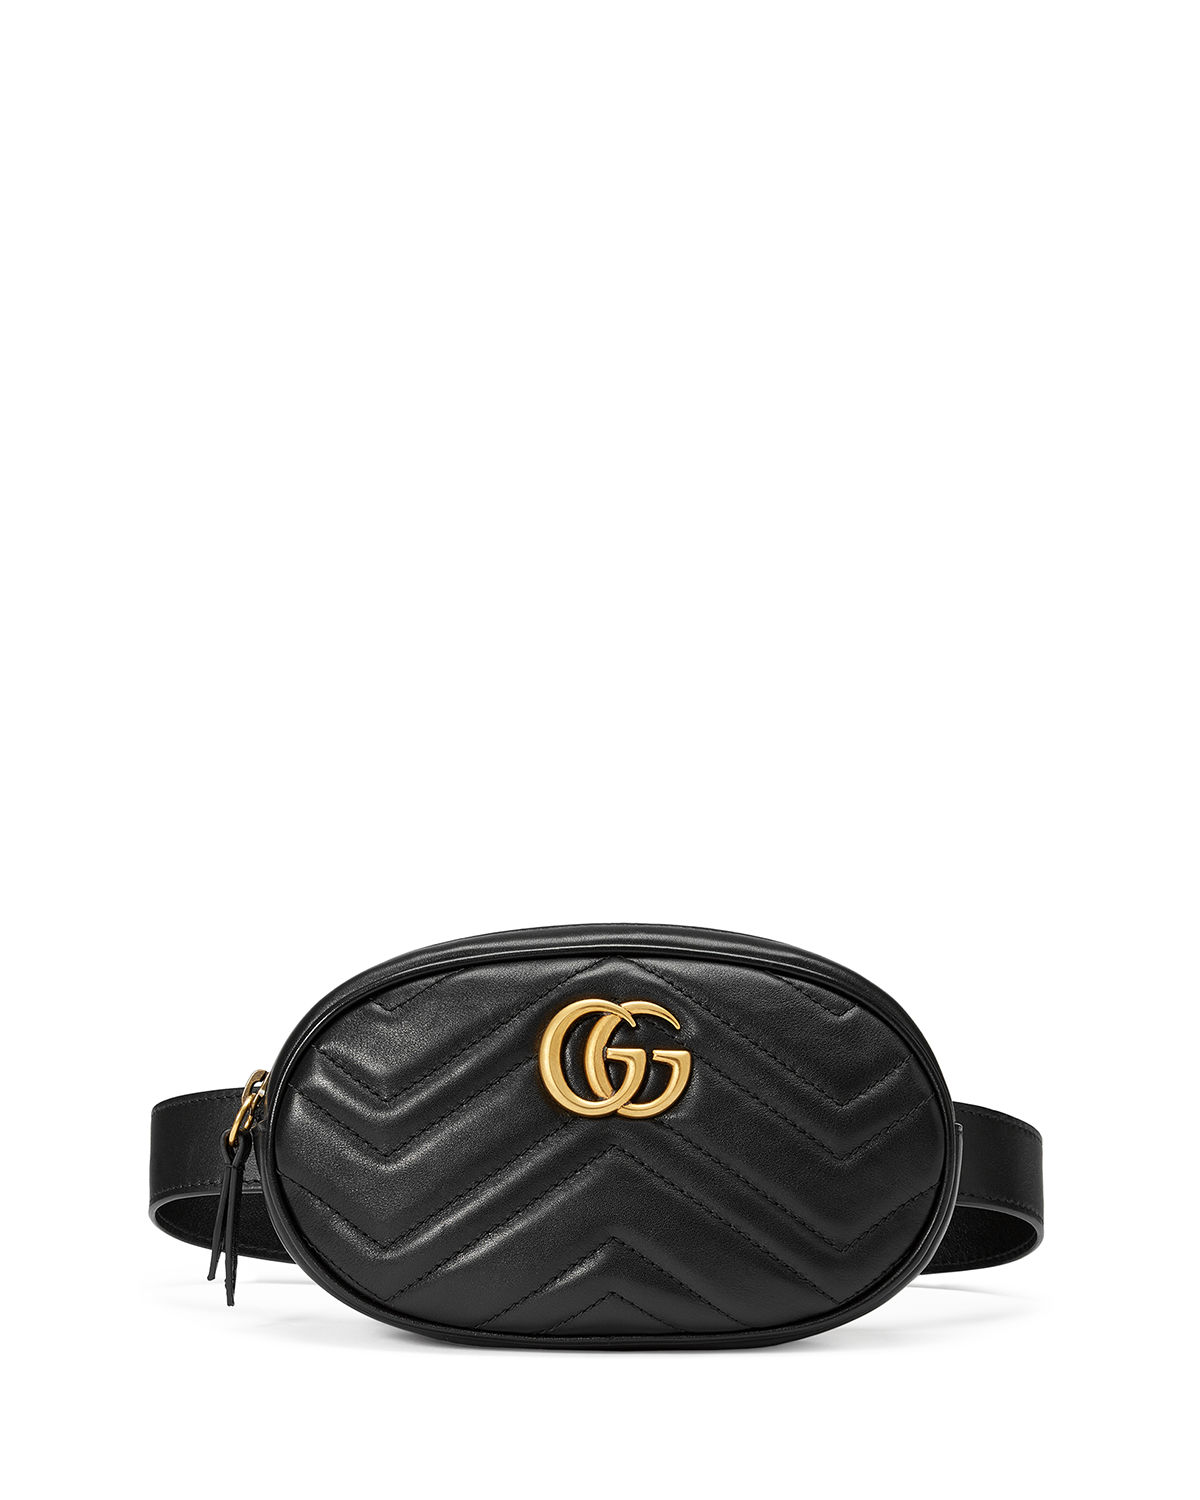 b5575352360 Gucci GG Marmont Small Matelasse Leather Belt Bag